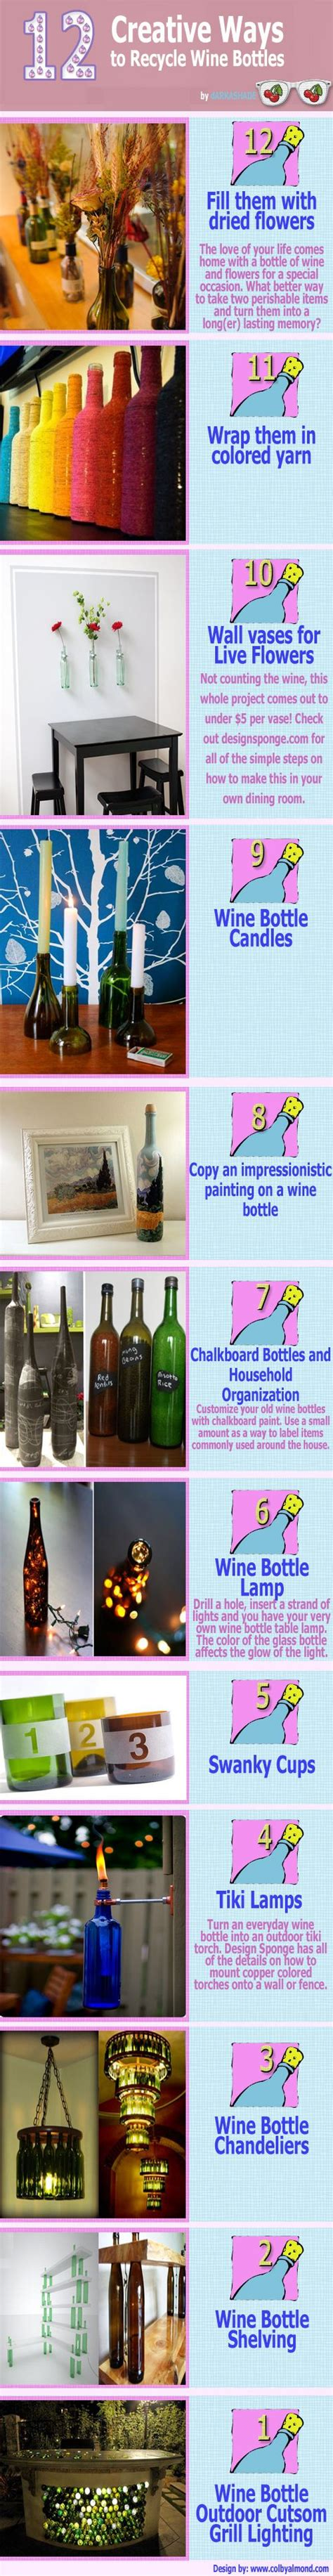 12 ways to recycle wine bottles infographic recycled wine bottles empty wine bottles and